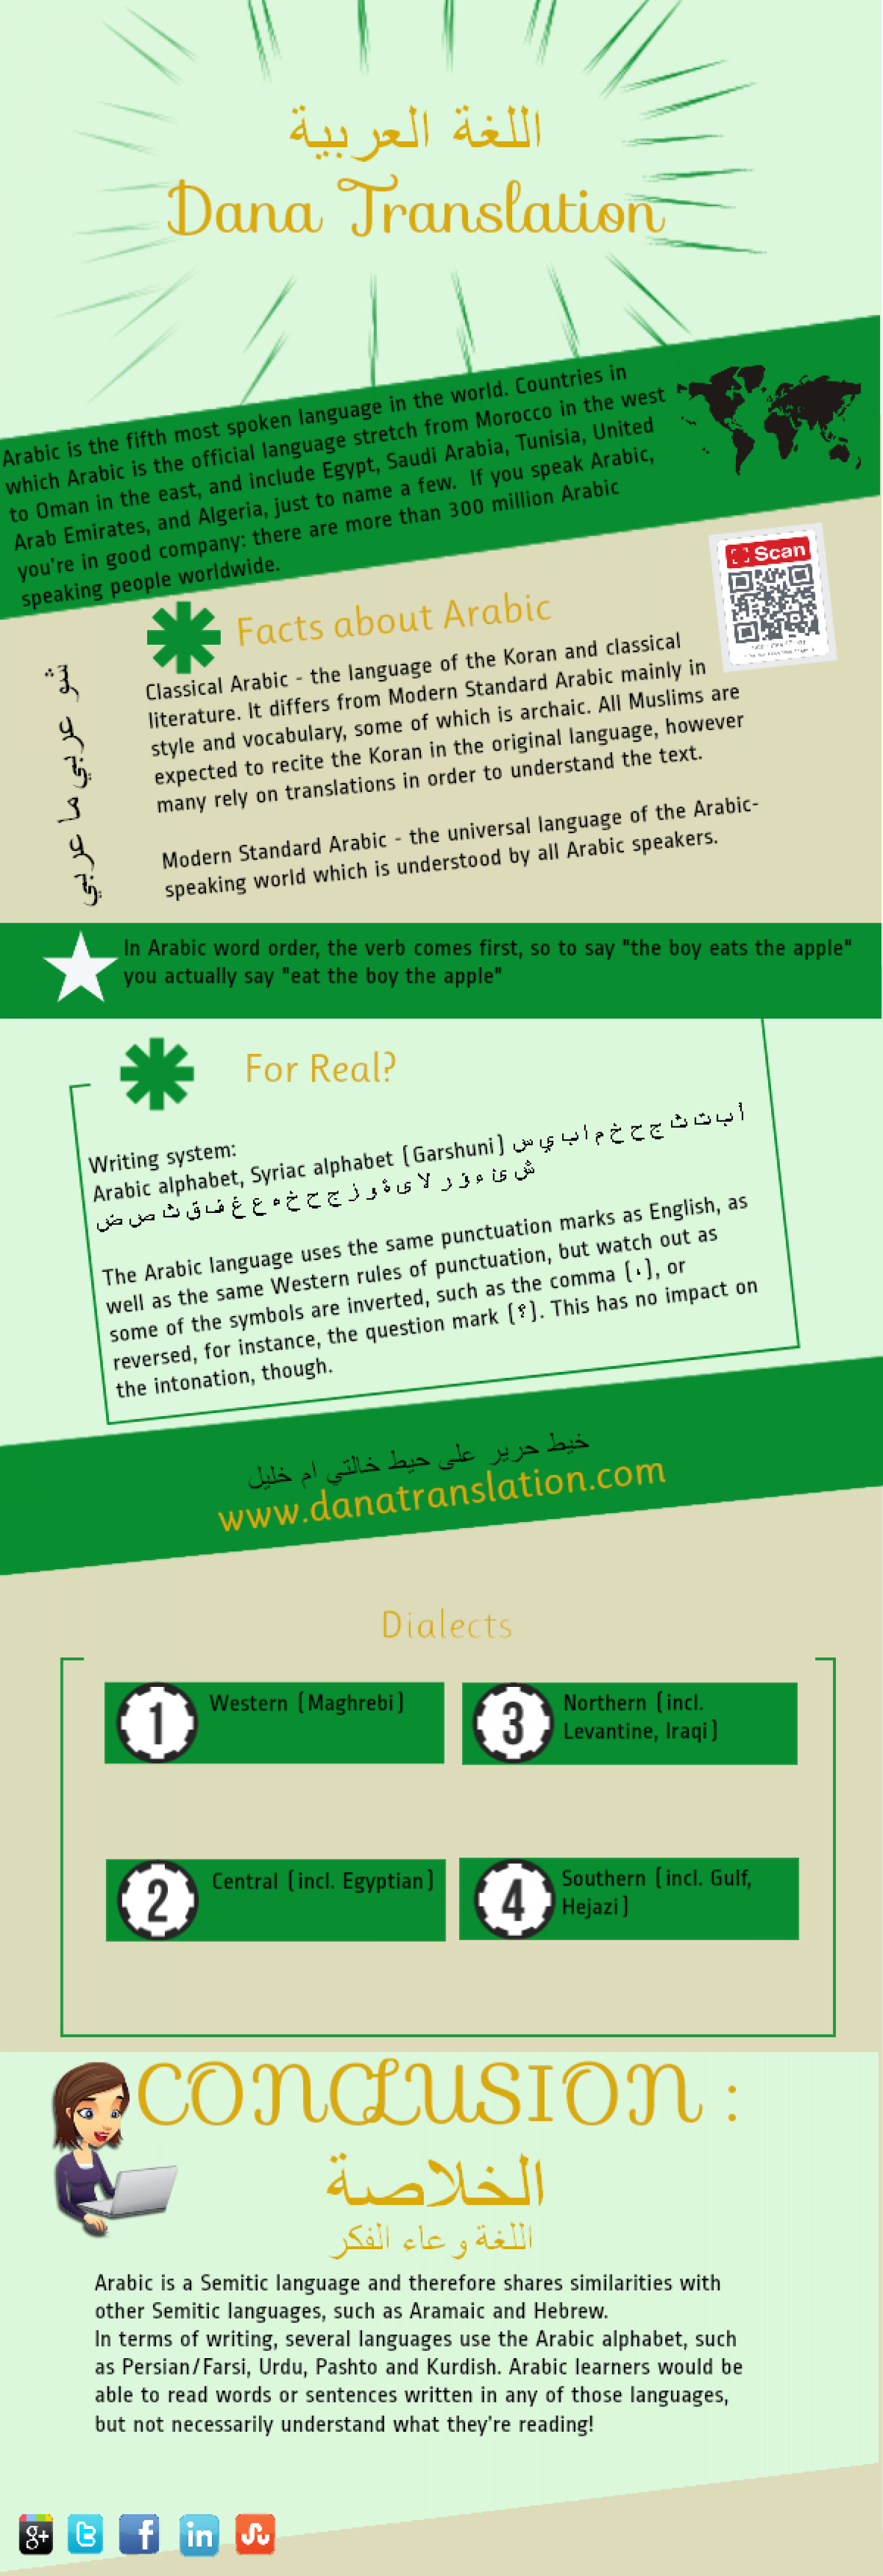 Facts about the Arabic language Infographic